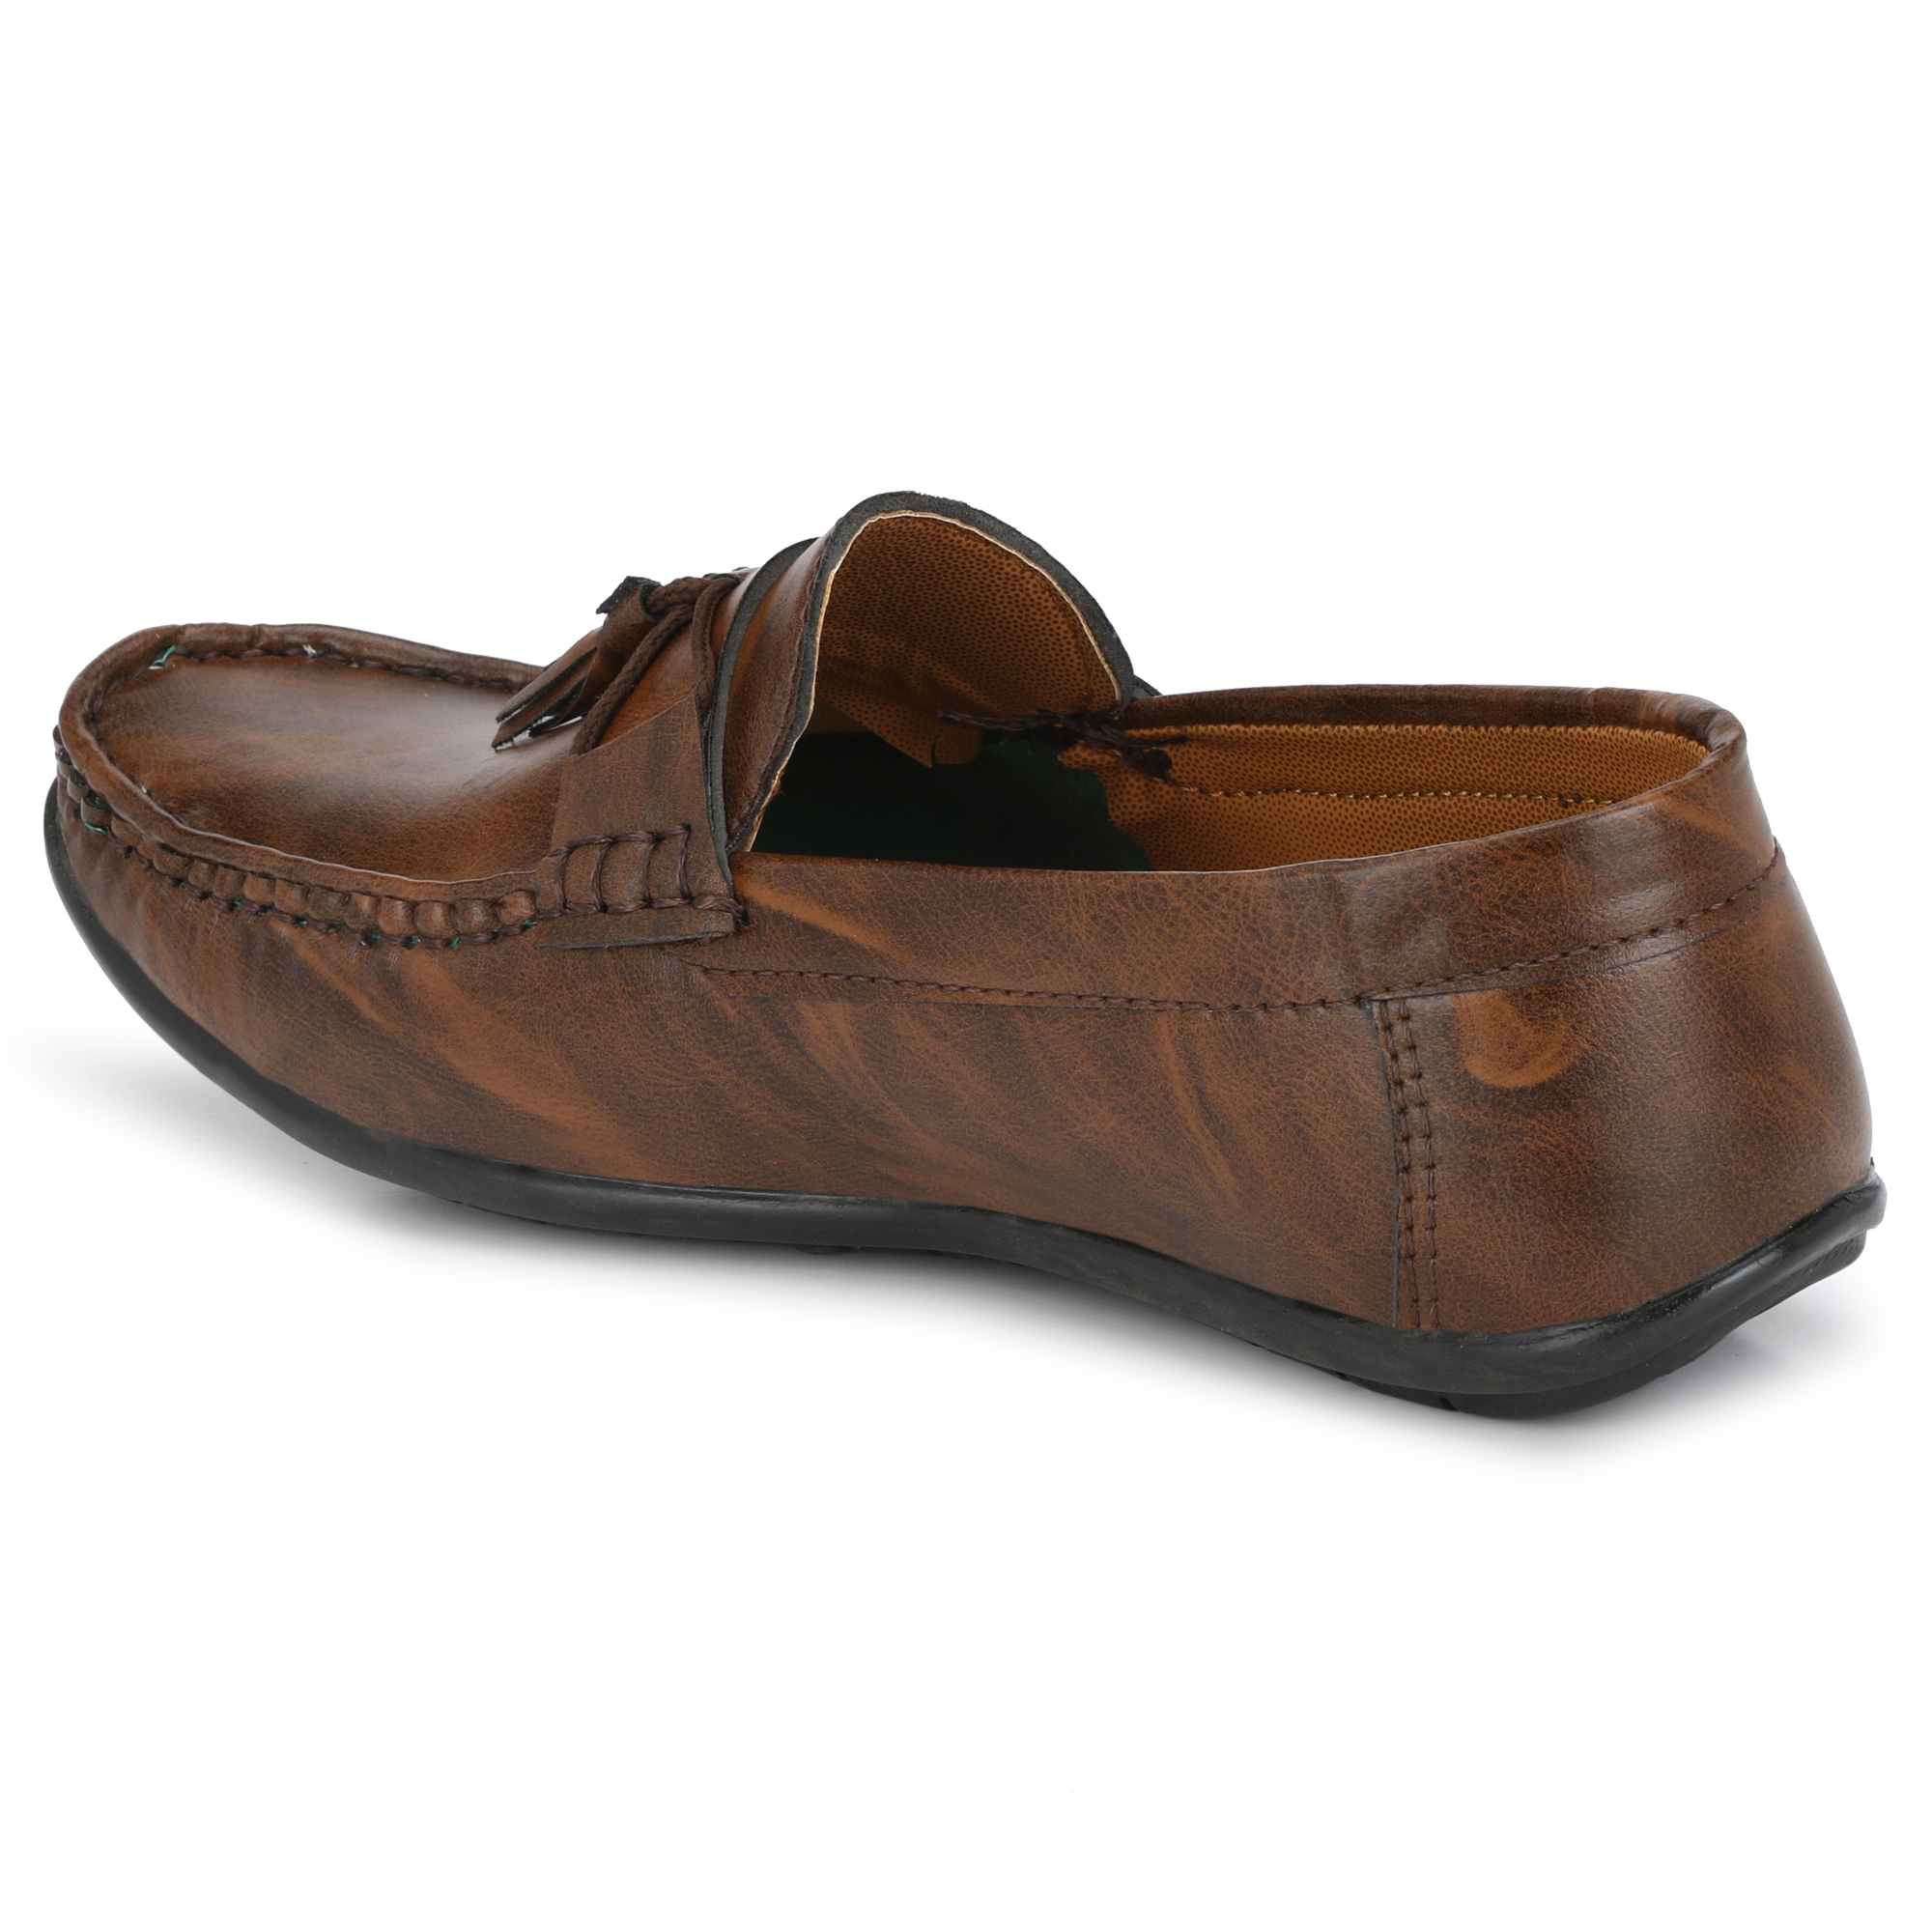 BUCIK Men's BROWN Synthetic Leather Loafers BCK1065-BROWN (Brown,6-10,8 PAIR)